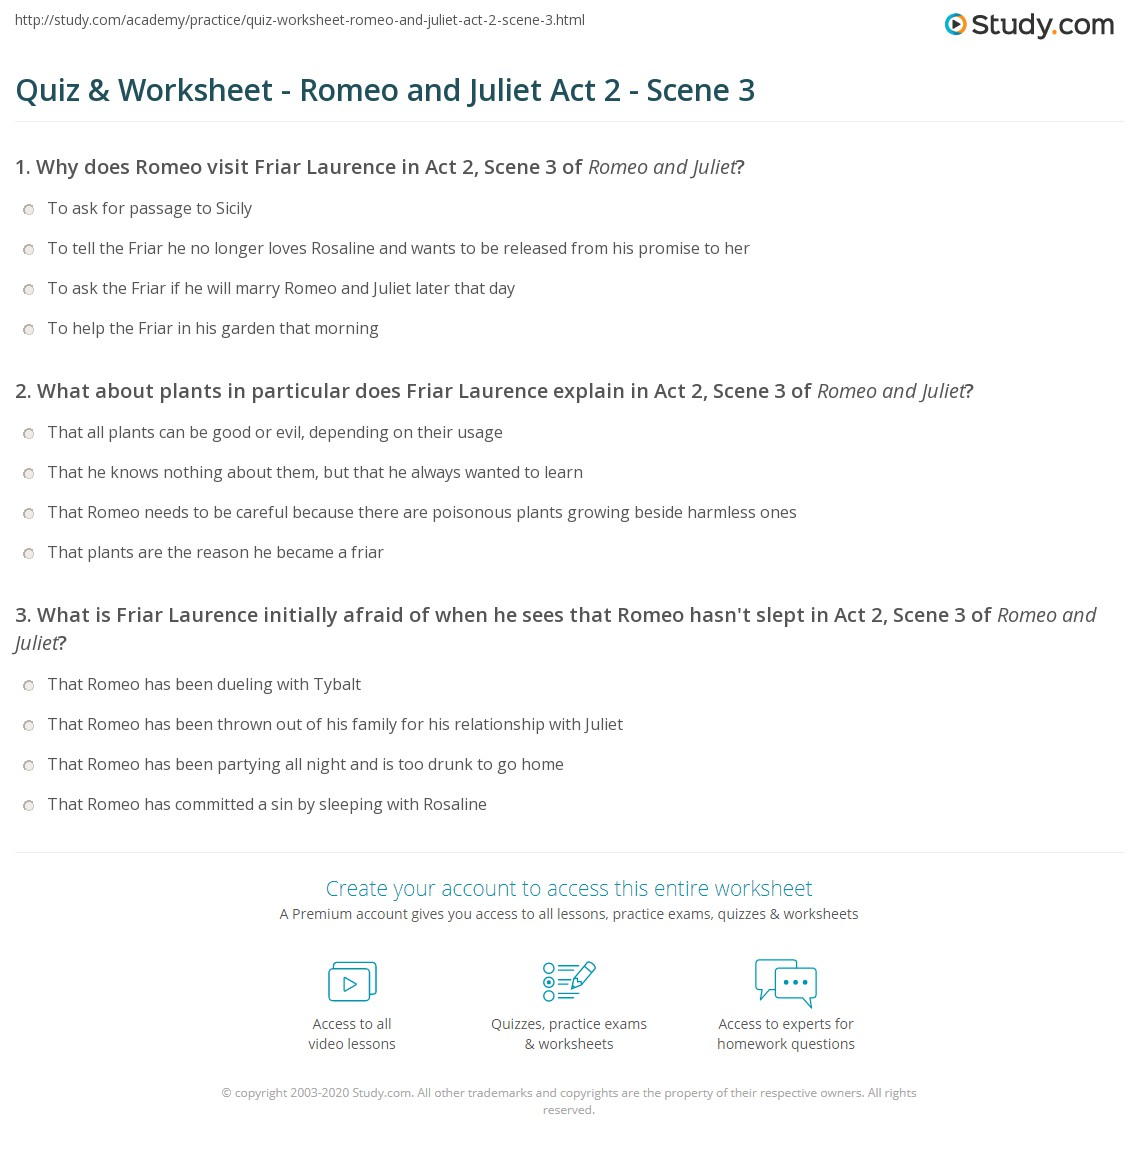 Quiz Worksheet Romeo and Juliet Act 2 Scene 3 – Romeo and Juliet Worksheet